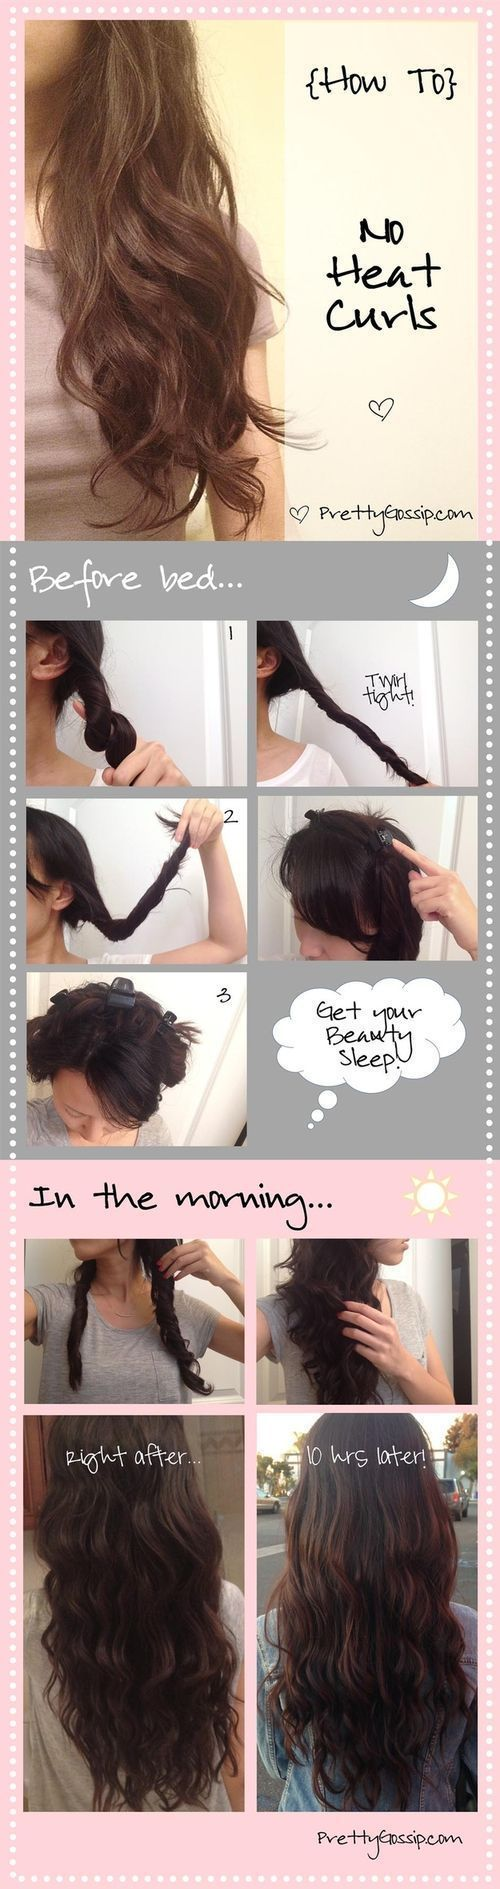 Outstanding 1000 Ideas About High School Hairstyles On Pinterest School Hairstyles For Men Maxibearus